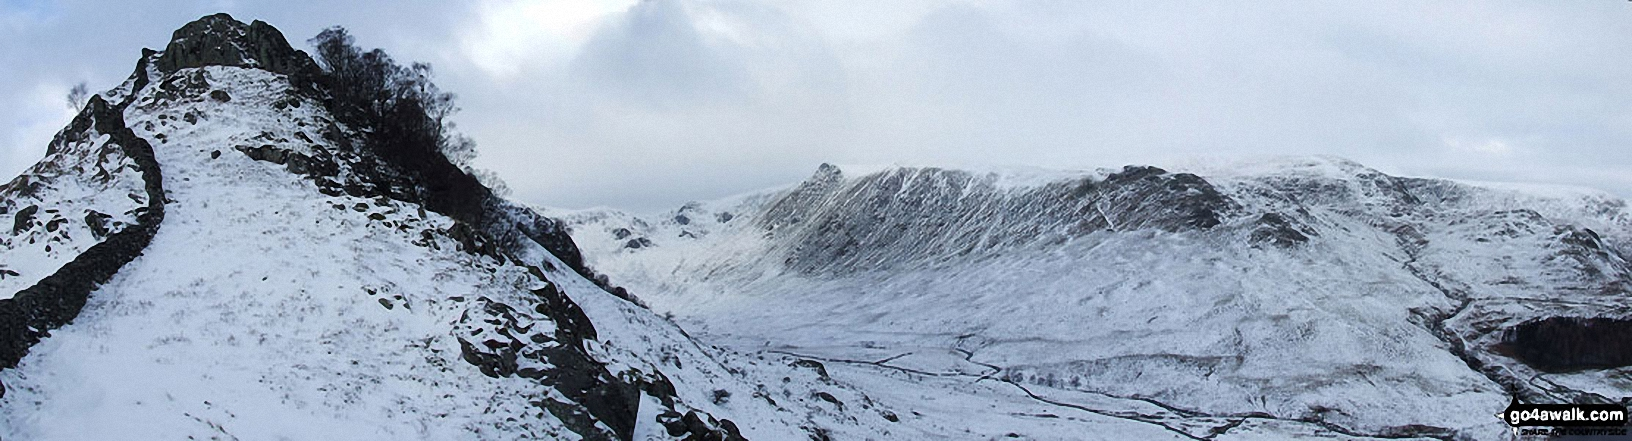 Swine Crag, Riggendale, Kidsty Pike and Kidsty Howes in the snow